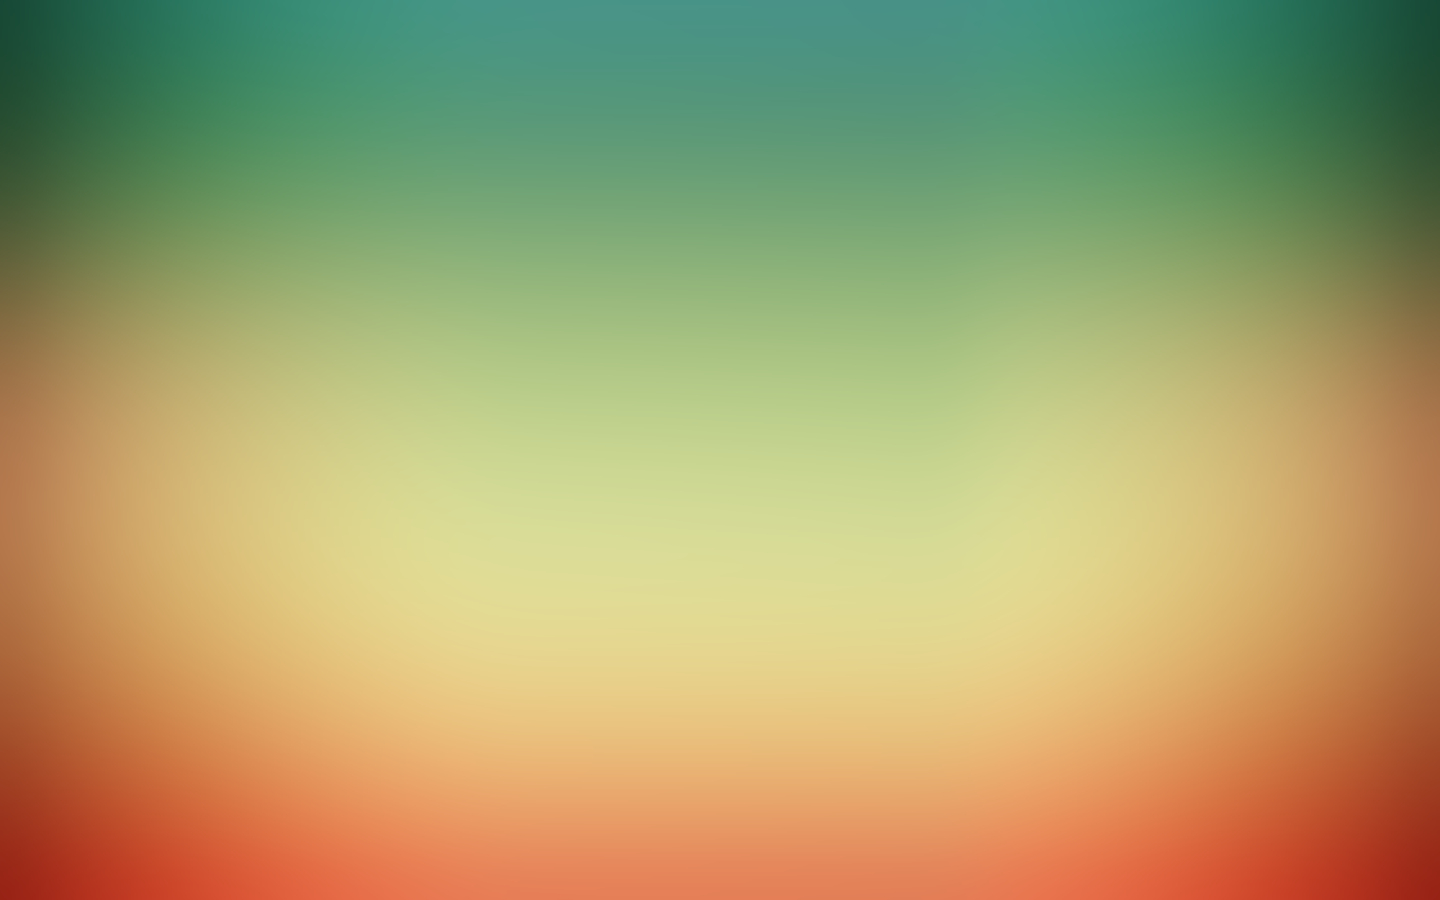 simple abstract wallpaper | image wallpaper collections